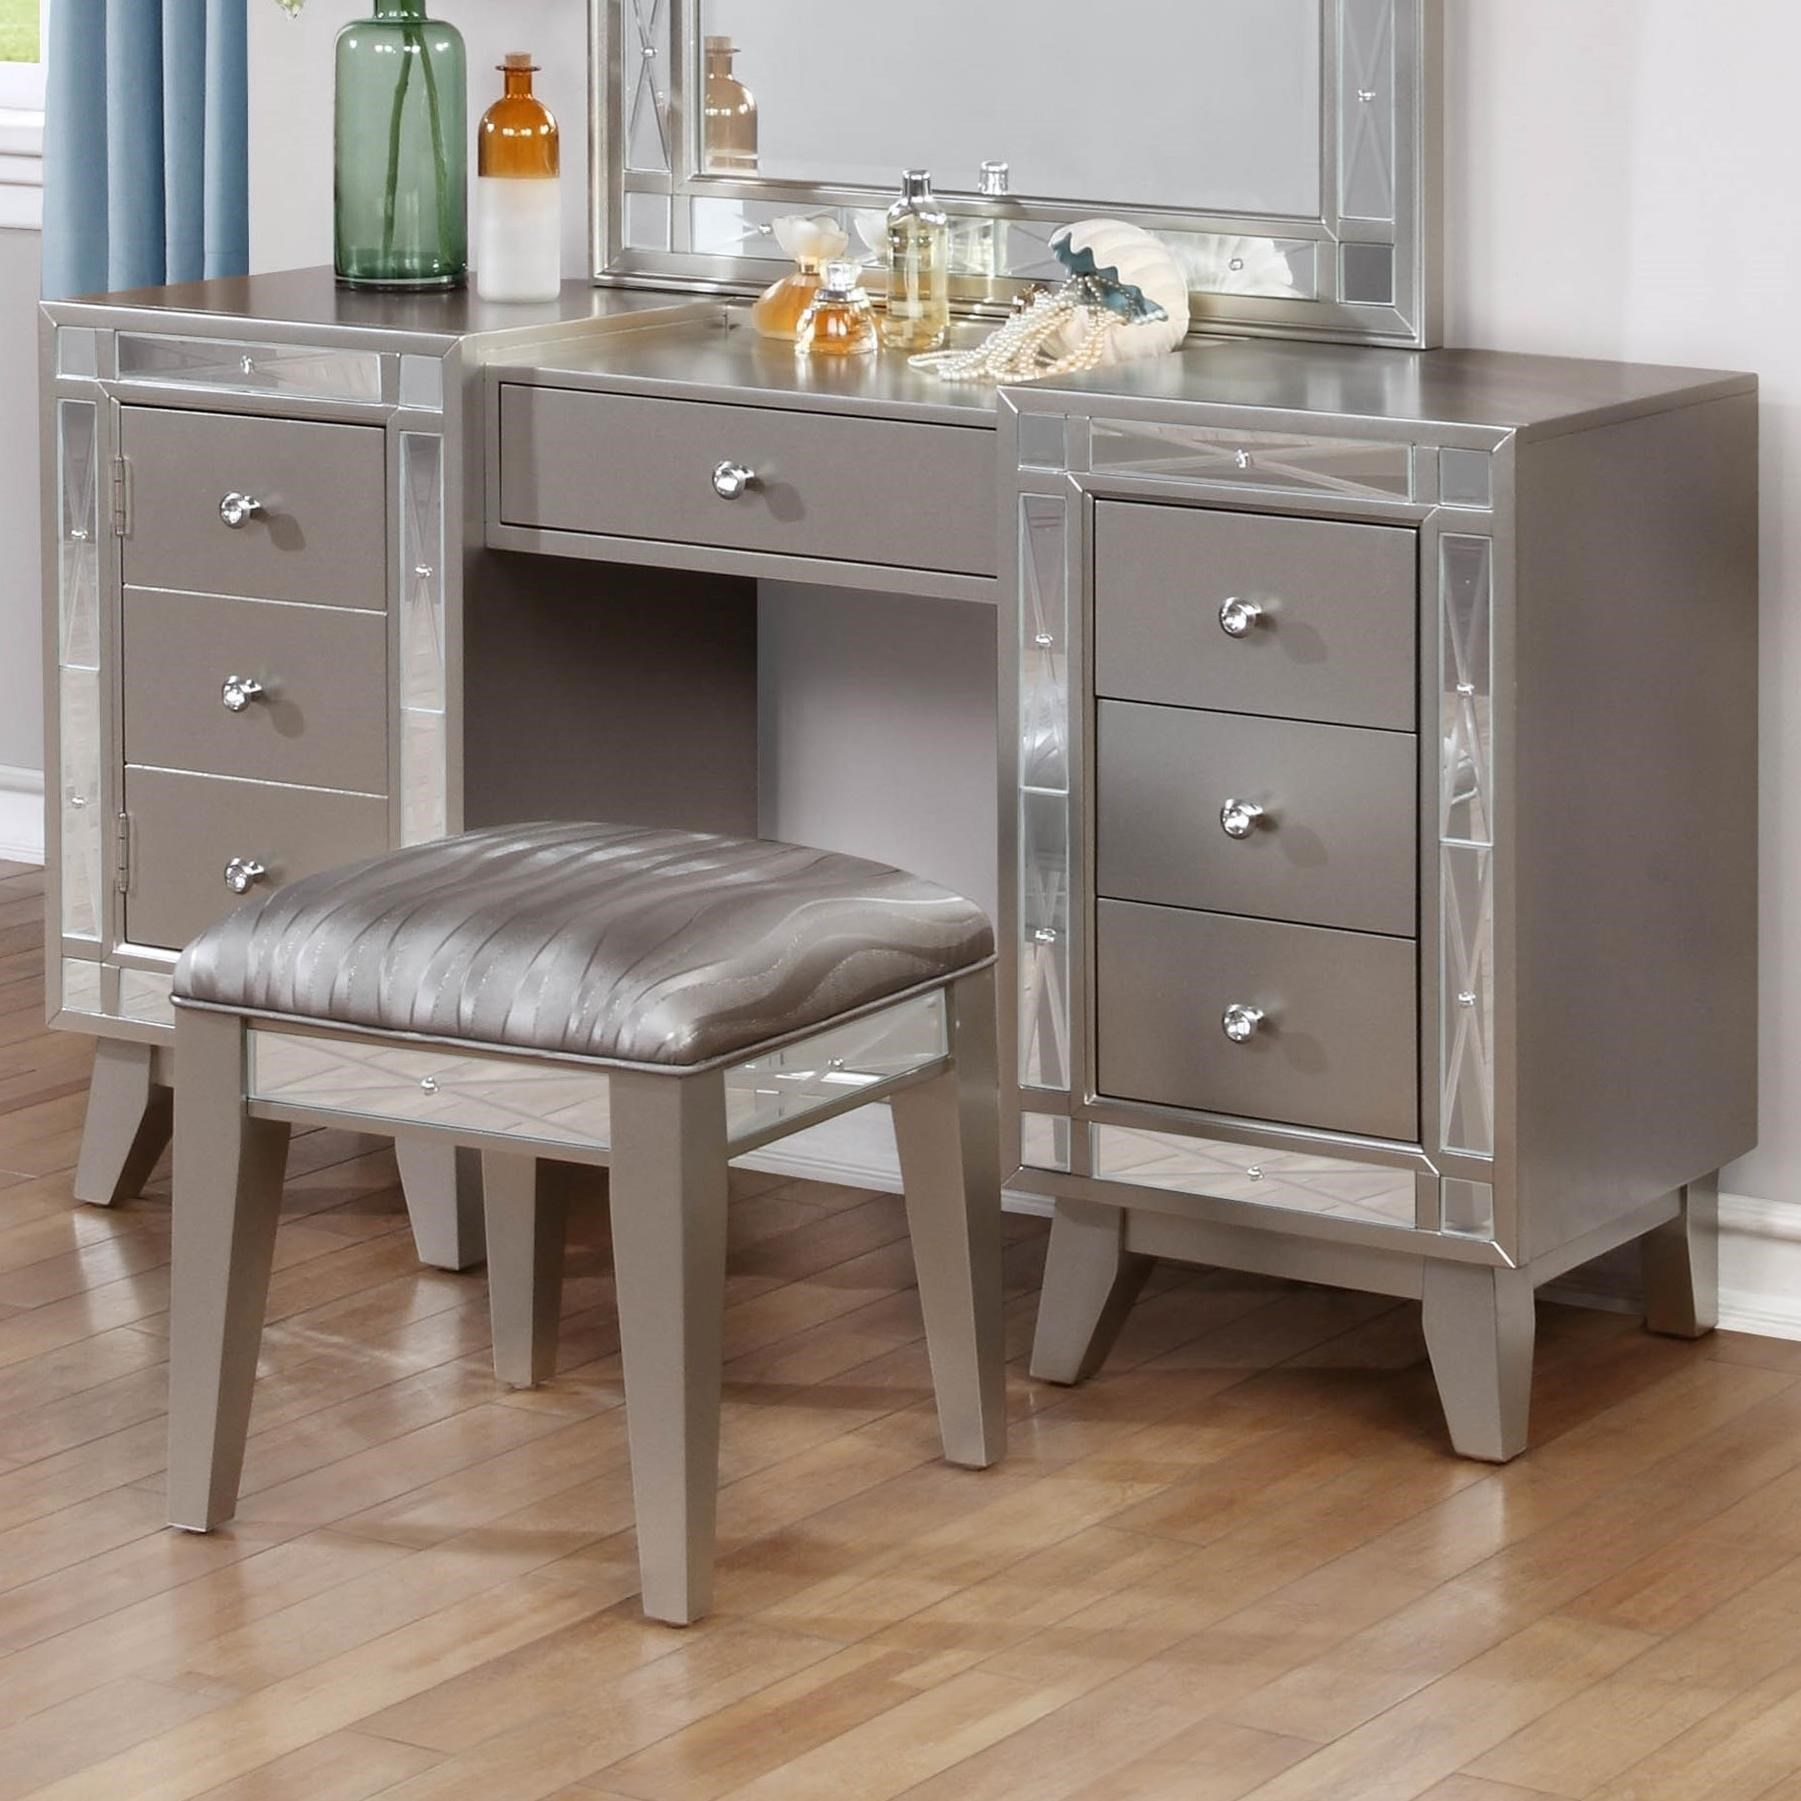 Attrayant Coaster Vanity   Find A Local Furniture Store With Coaster Fine Furniture  Vanity